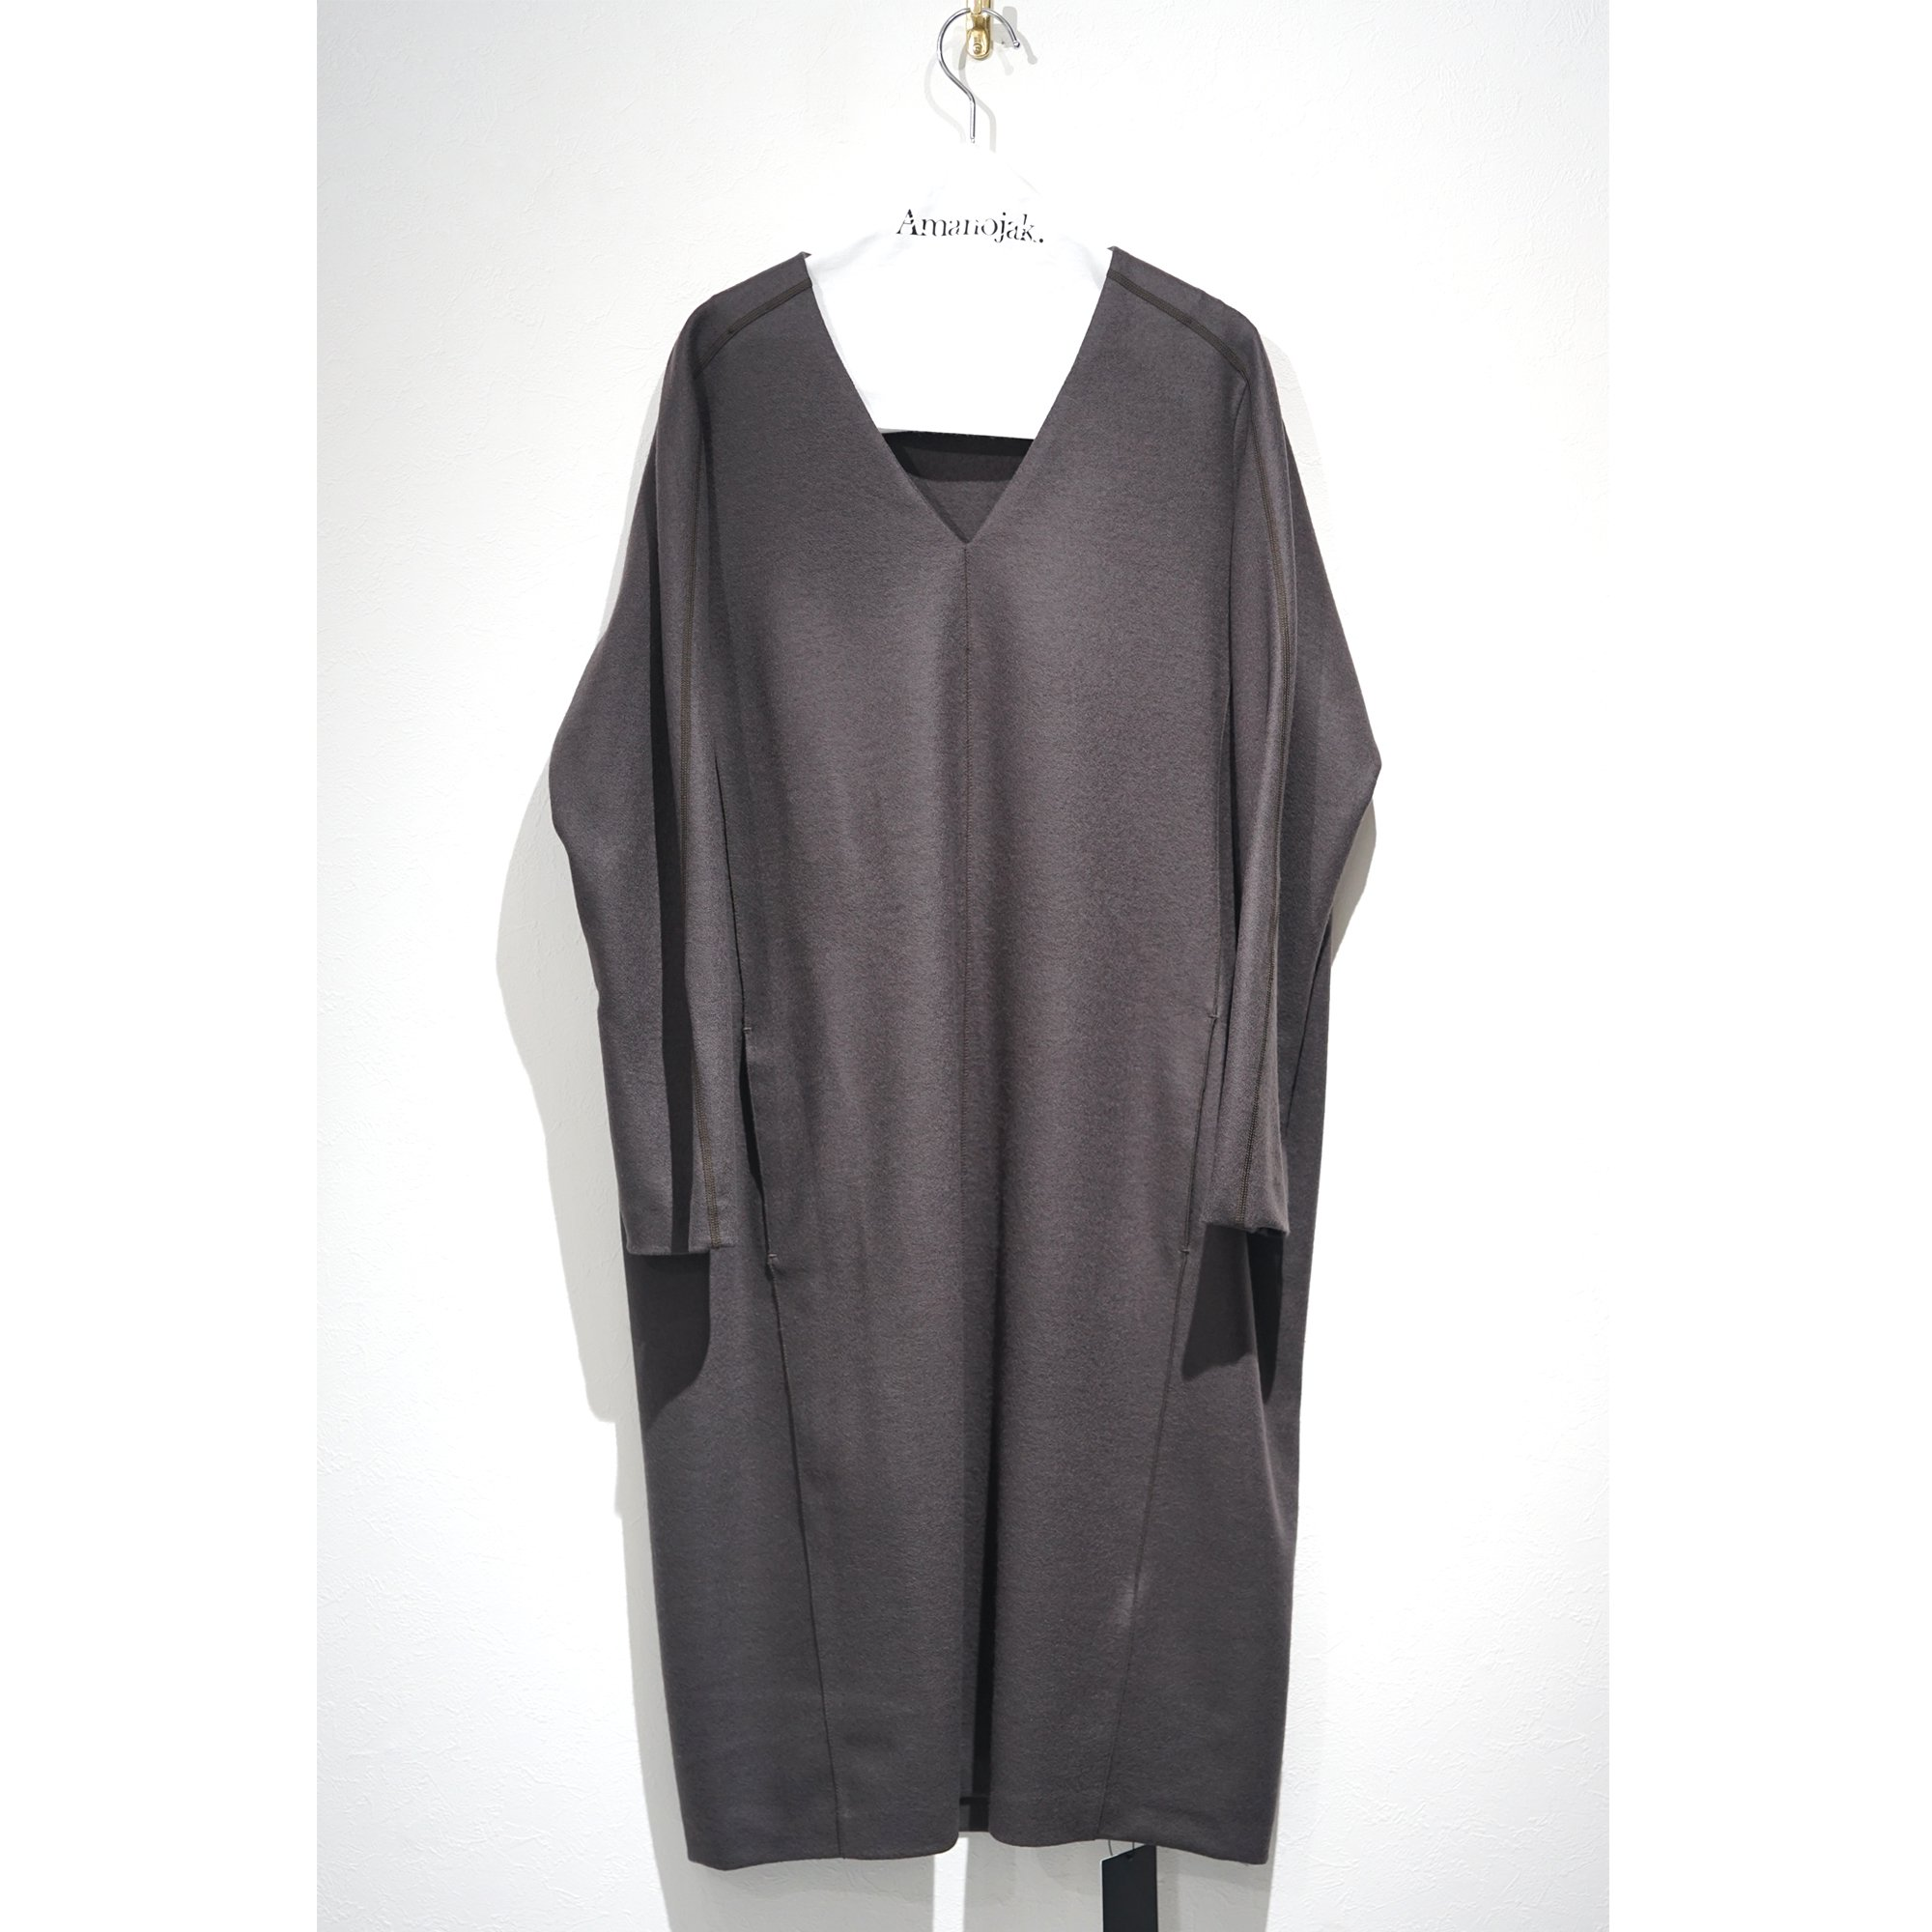 <img class='new_mark_img1' src='https://img.shop-pro.jp/img/new/icons20.gif' style='border:none;display:inline;margin:0px;padding:0px;width:auto;' />ATON-SUPER140's WOOL SACK DRESS